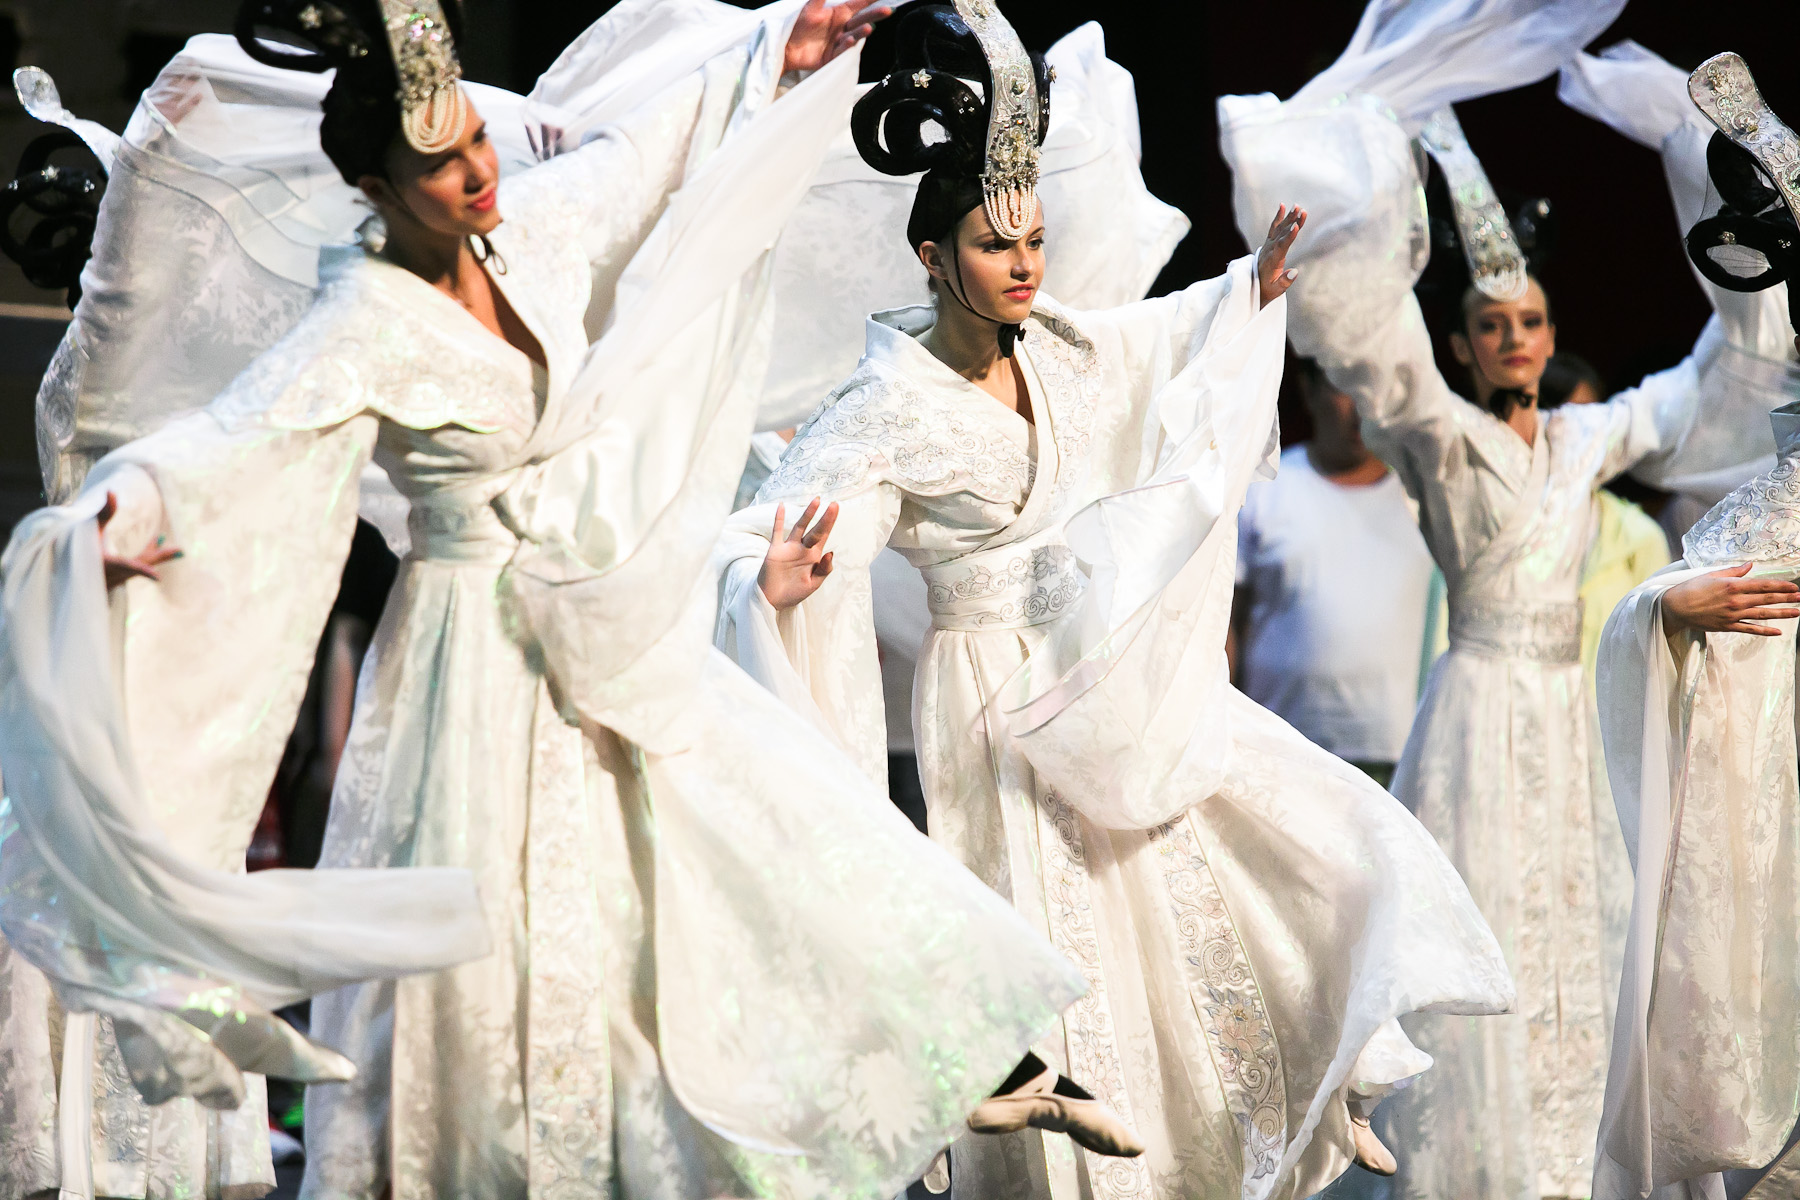 Dancers of Dance School Bolero from Ljubljana dance on stage during the second rehearsal of China National Opera House production of Giacomo Puccini\'s Turandot in Cankarjev dom Cultural & Congress center in Ljubljana, Slovenia, Aug. 31, 2015.